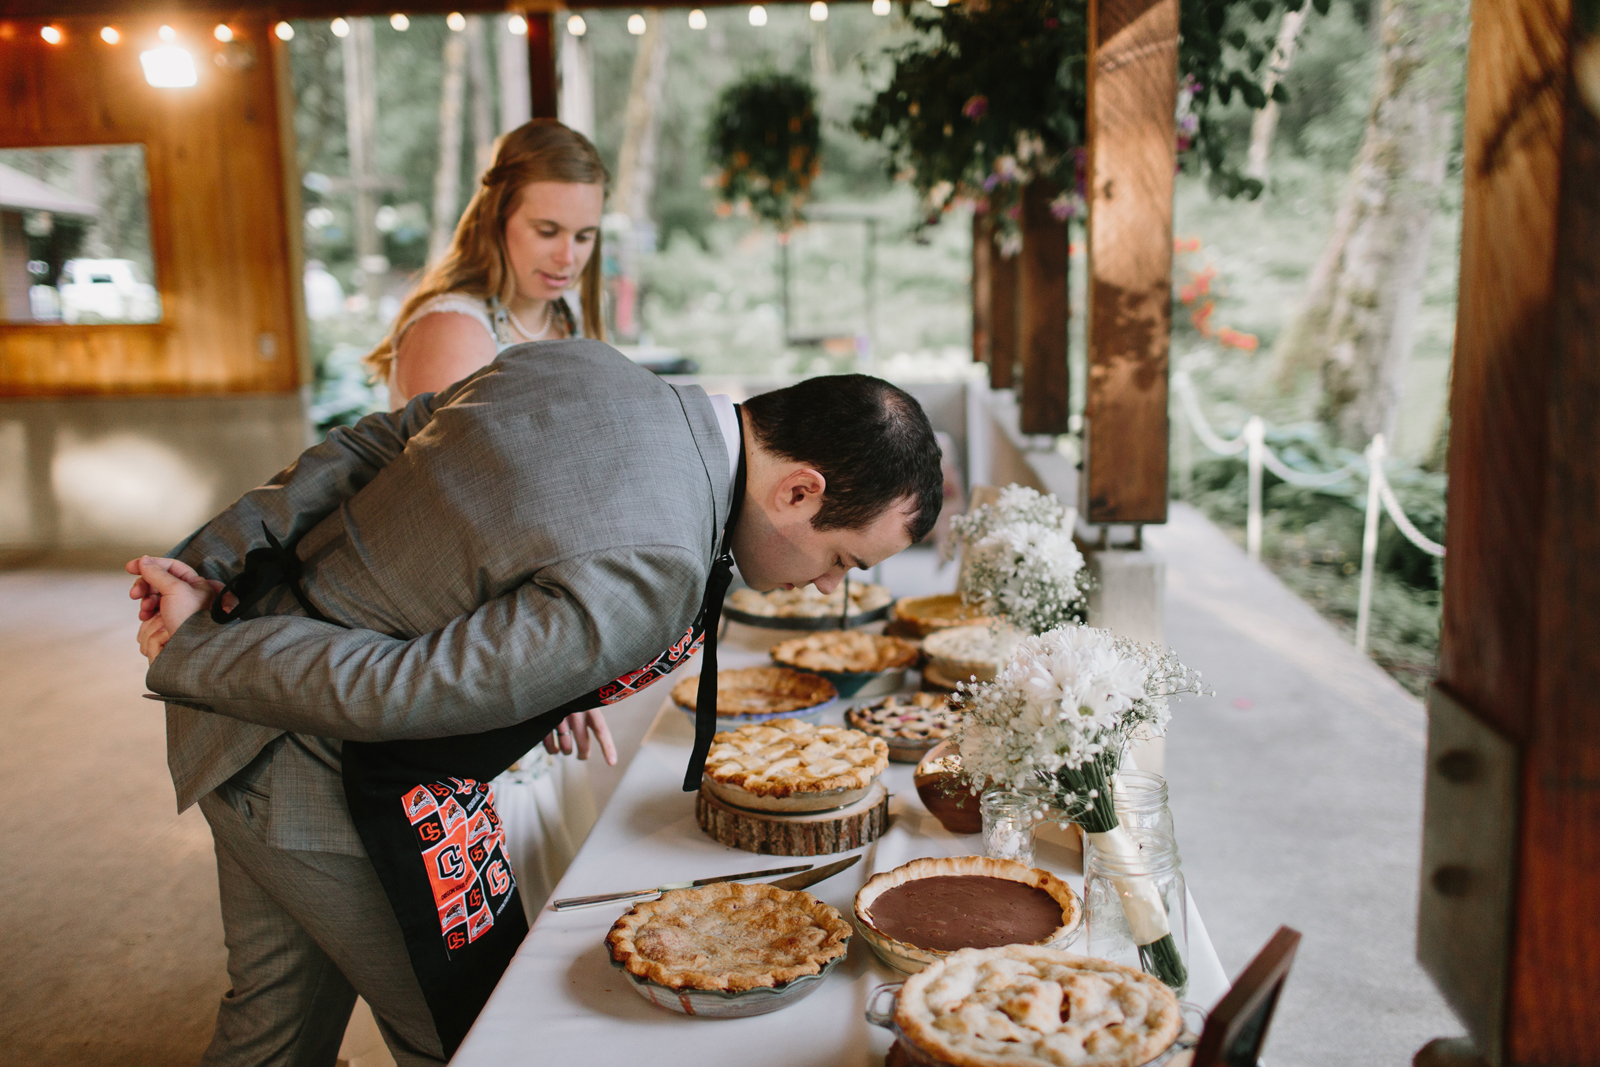 The groom sniffs the pies at Bridal Veil Lakes in Corbett, OR